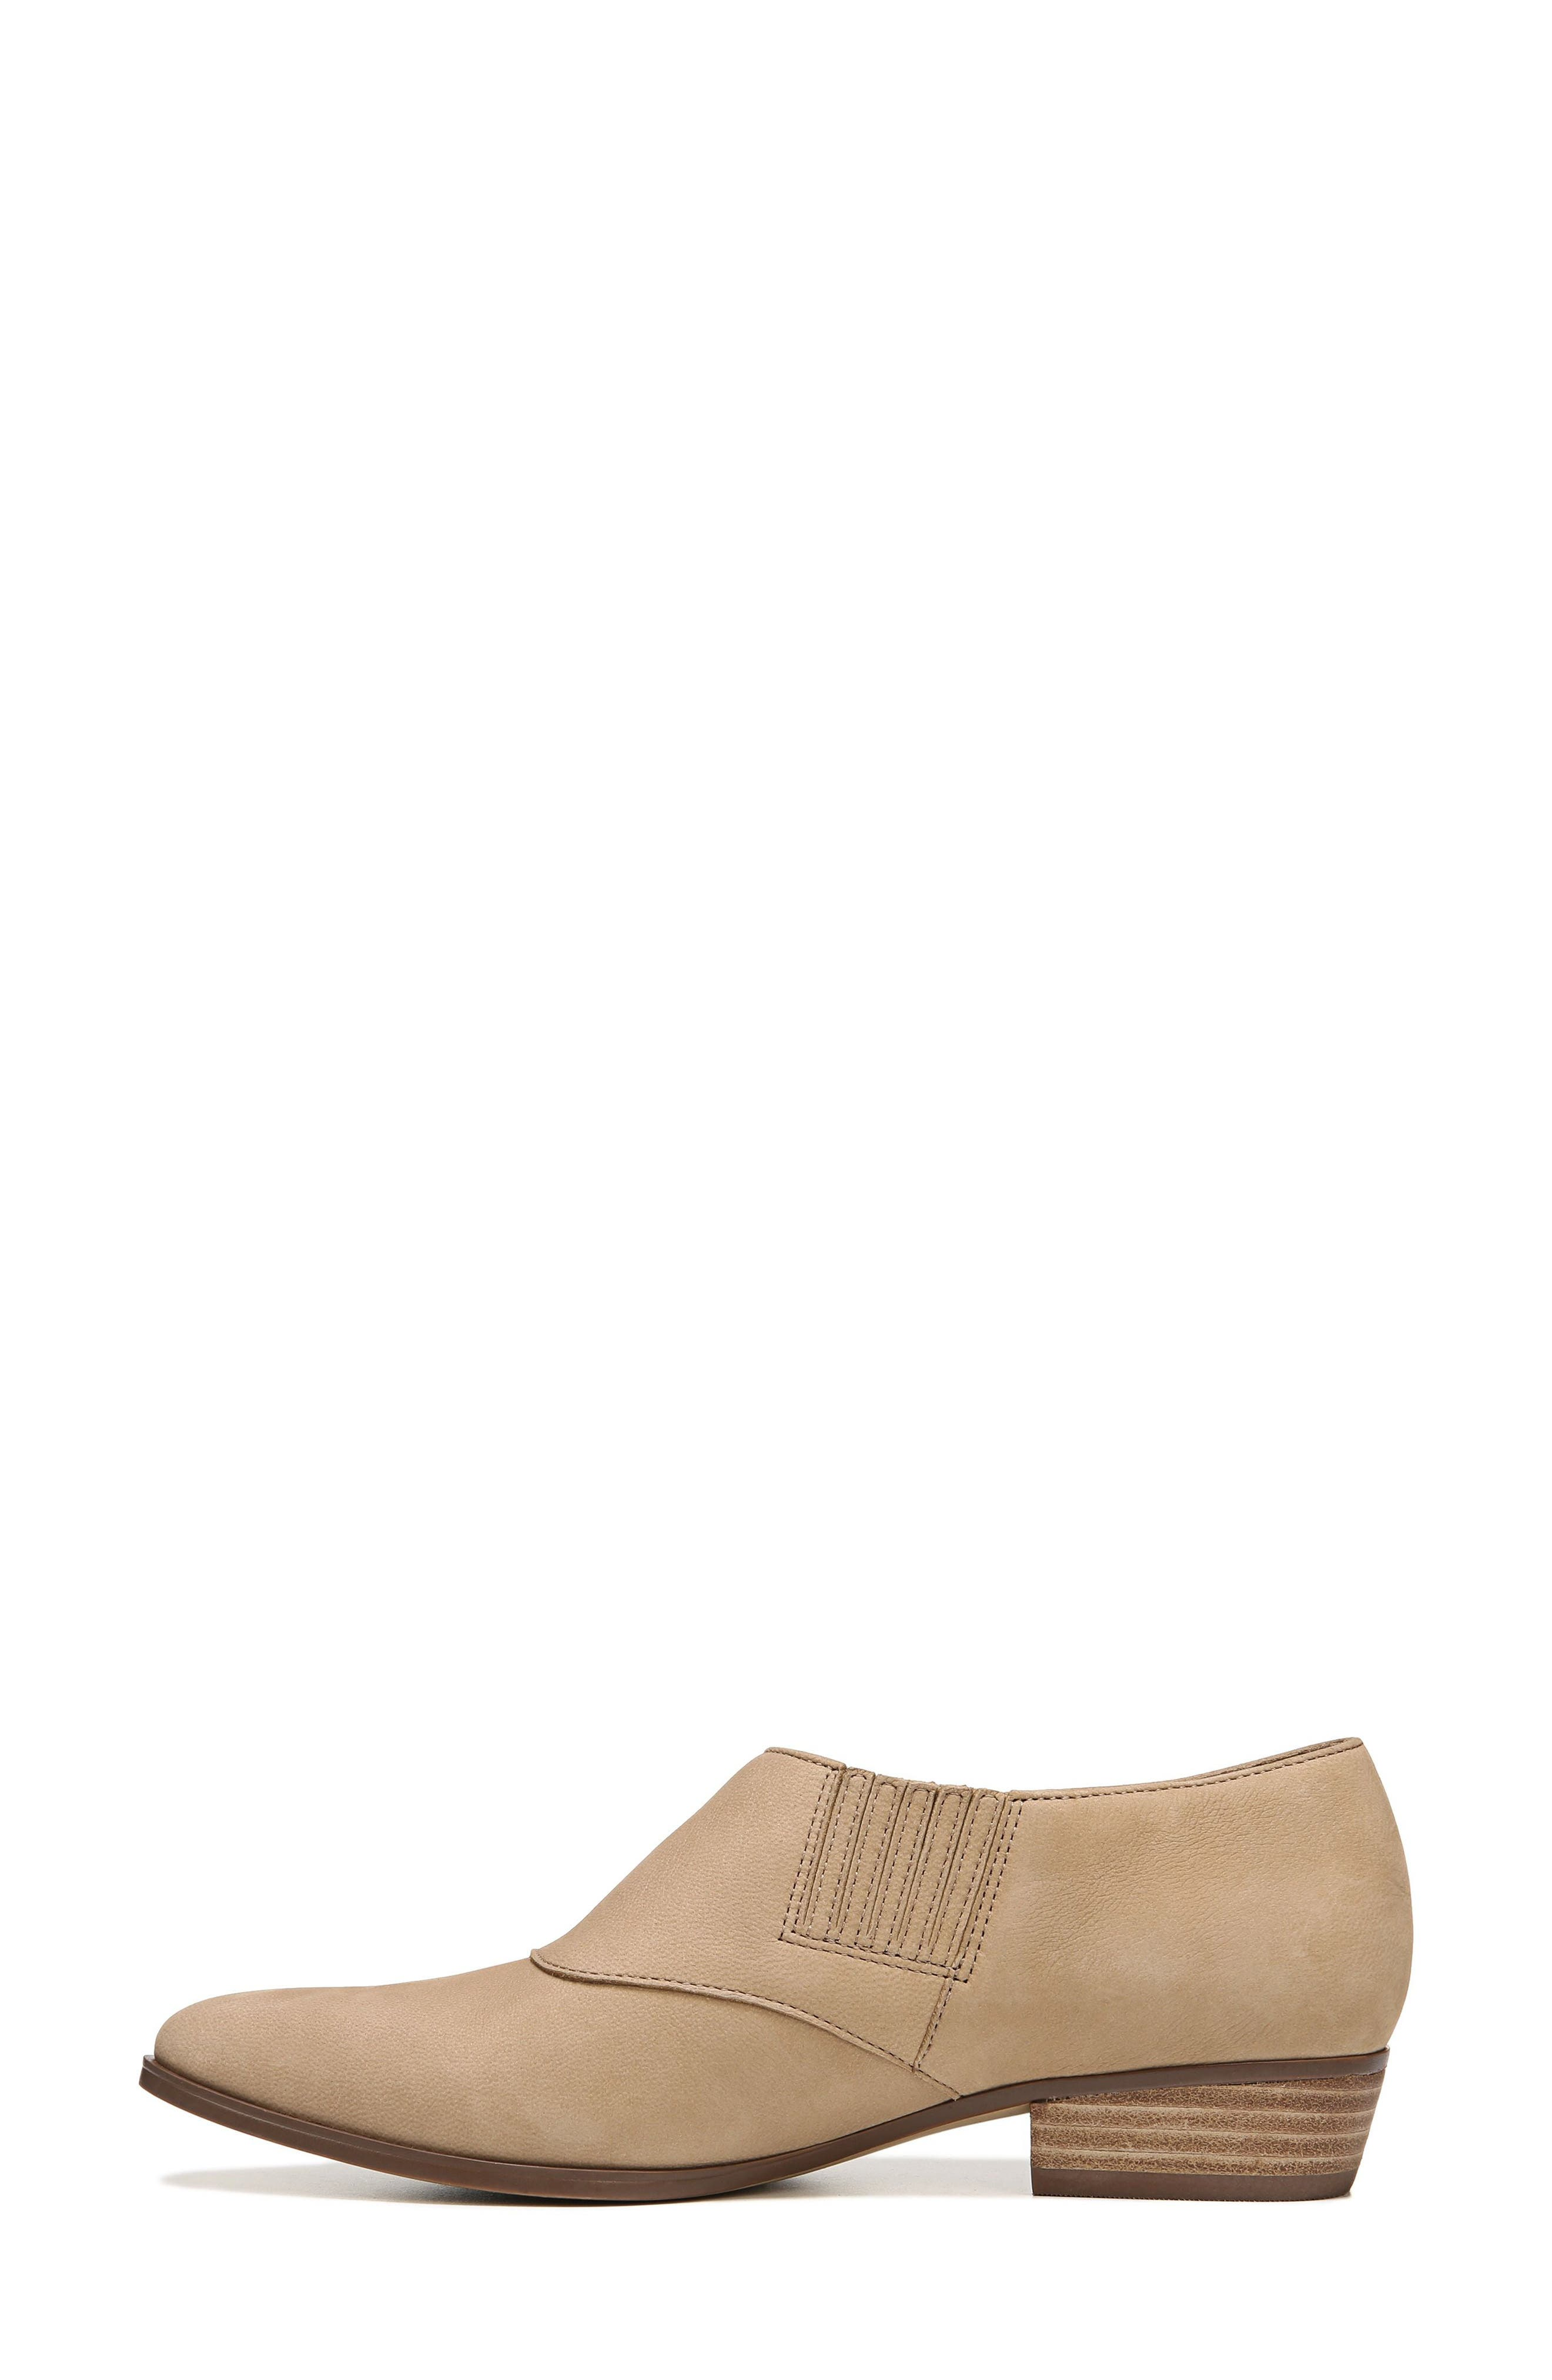 Blythe Bootie,                             Alternate thumbnail 4, color,                             Toasted Barley Nubuck